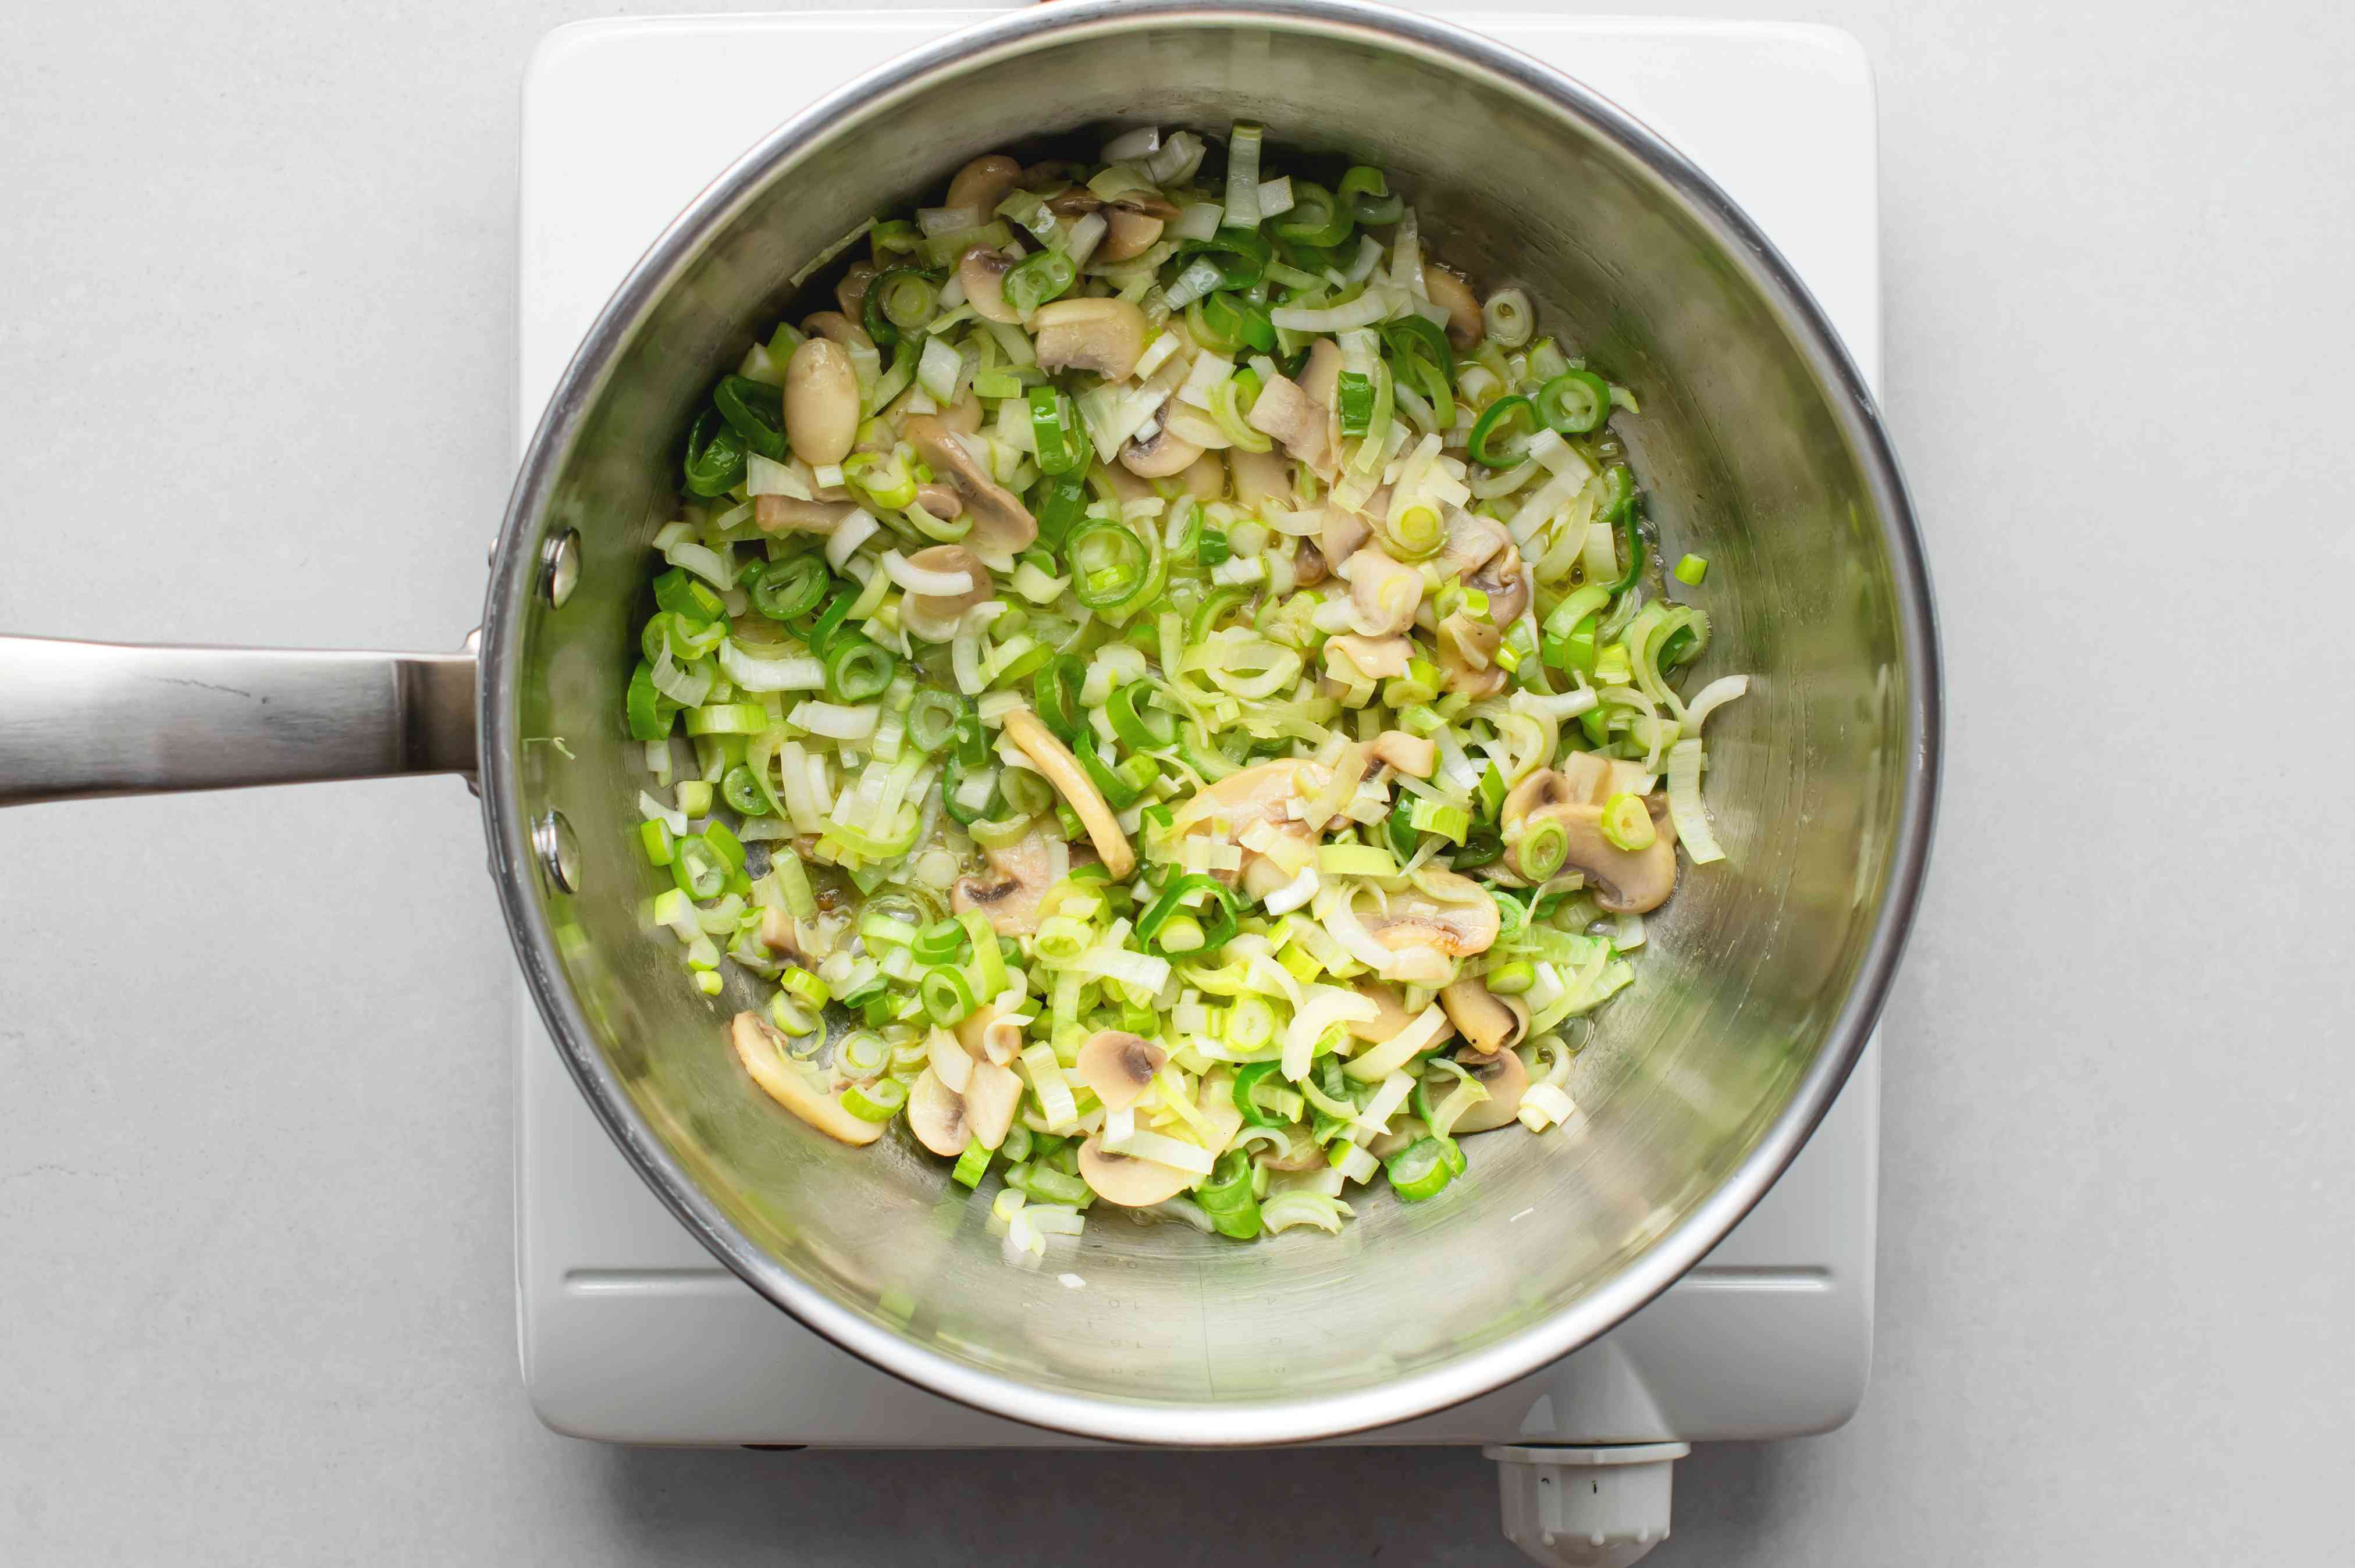 green onions and mushrooms in a saucepan